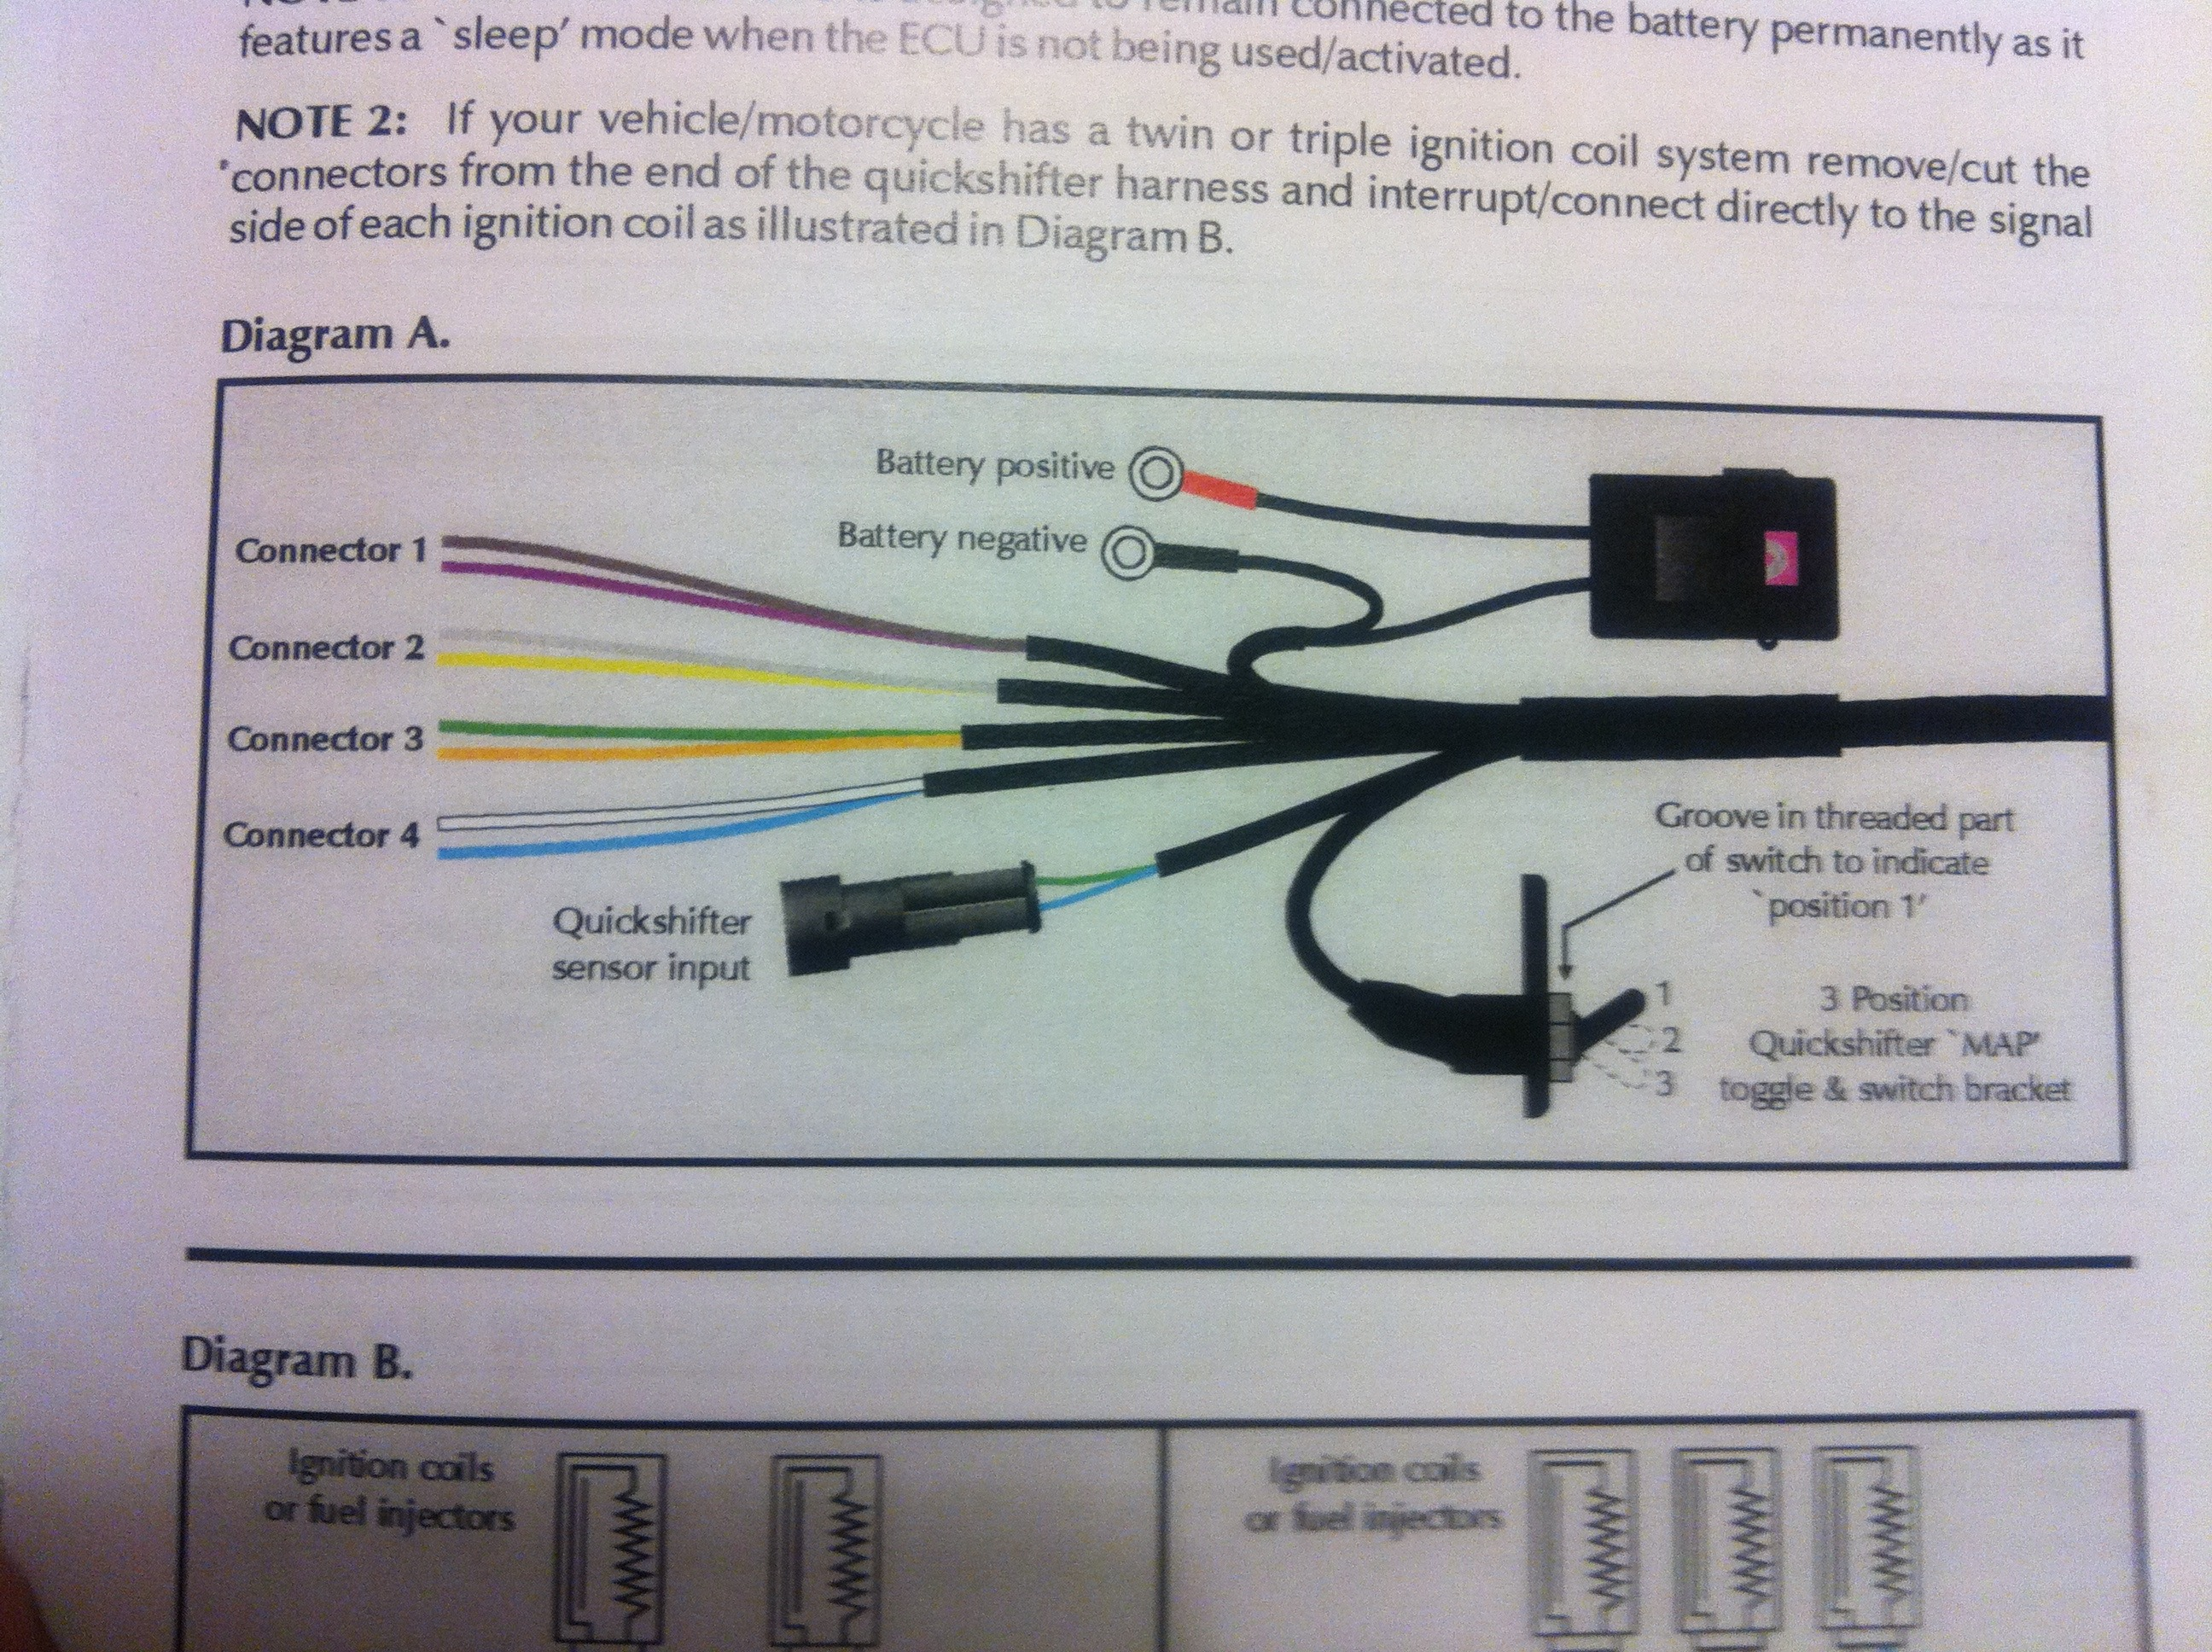 Translogic Quick Shifter Wiring Diagram Free Download Triumph Motorcycle Ignition Switch 06 08 And 09 On Qs Page 2 675 Cc U2022 Forum